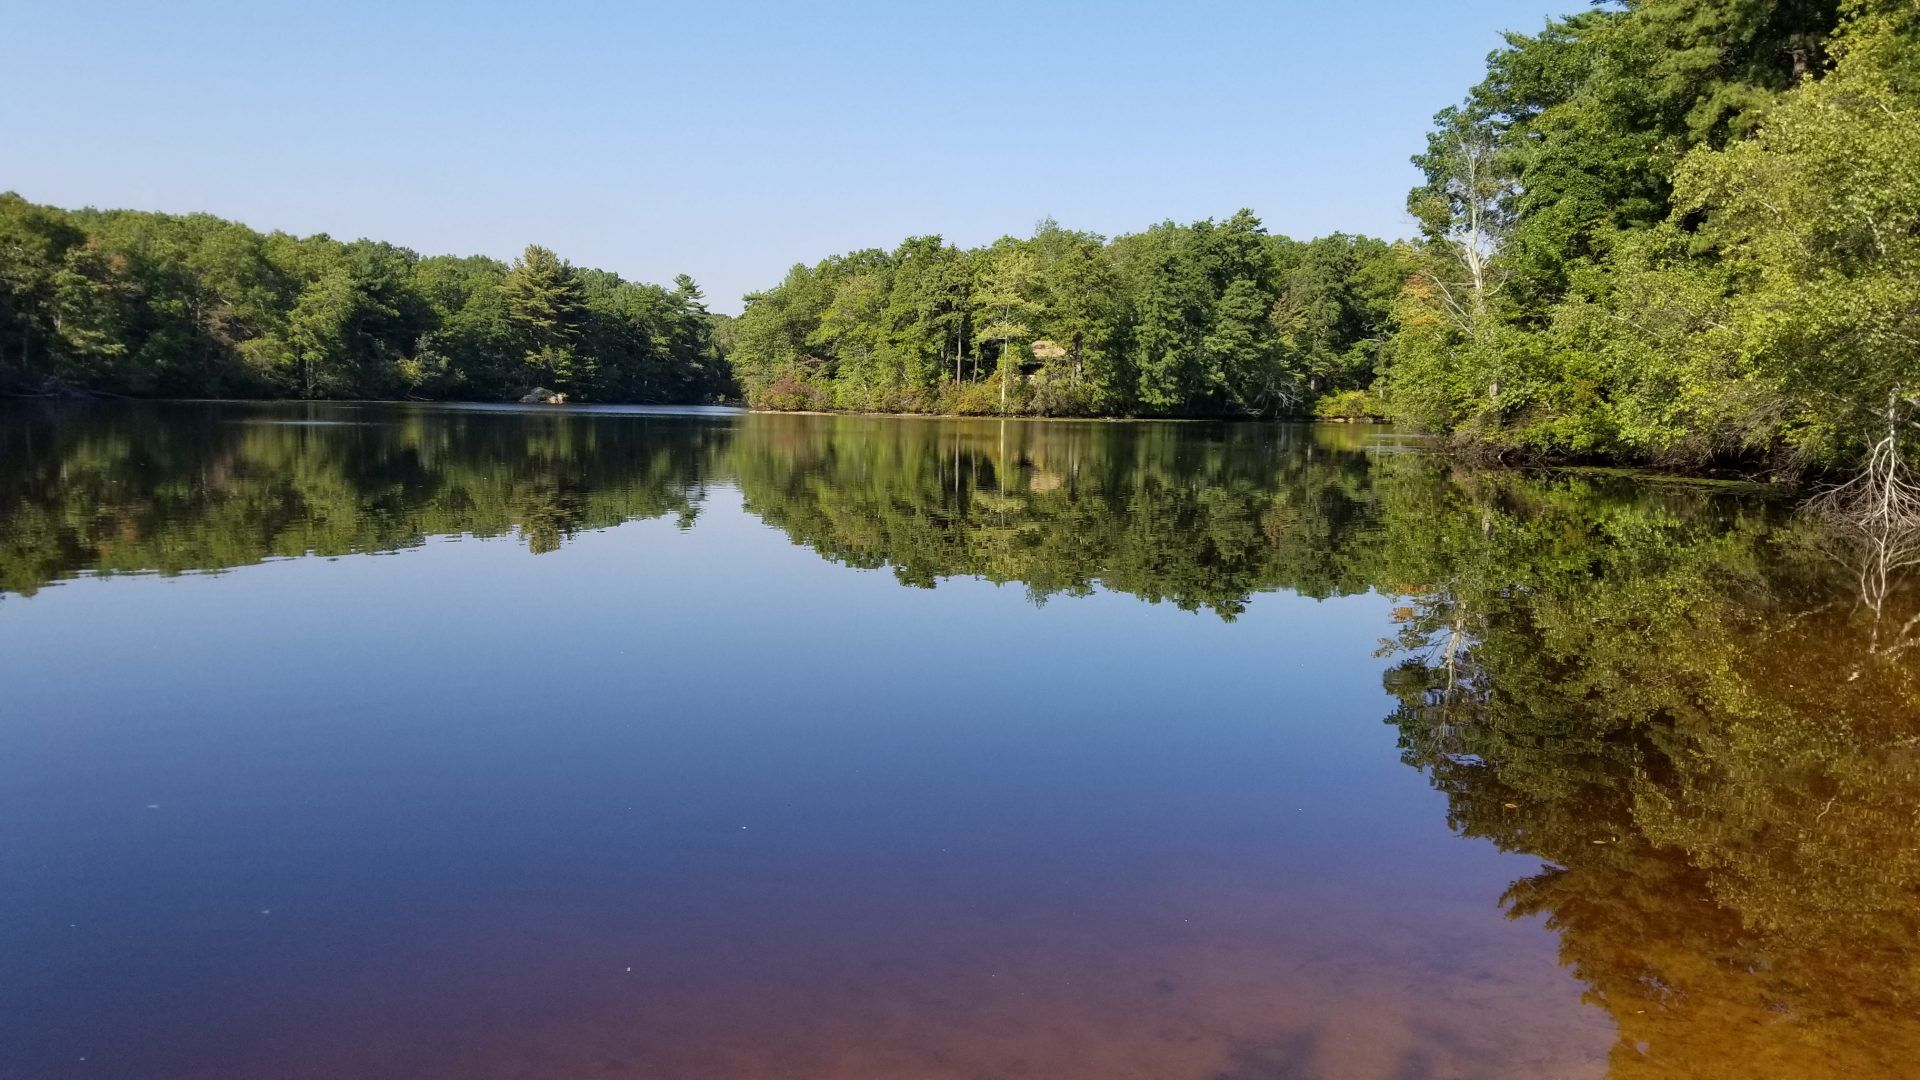 Powissett pond fishing hale reservation dover for Public fishing access near me